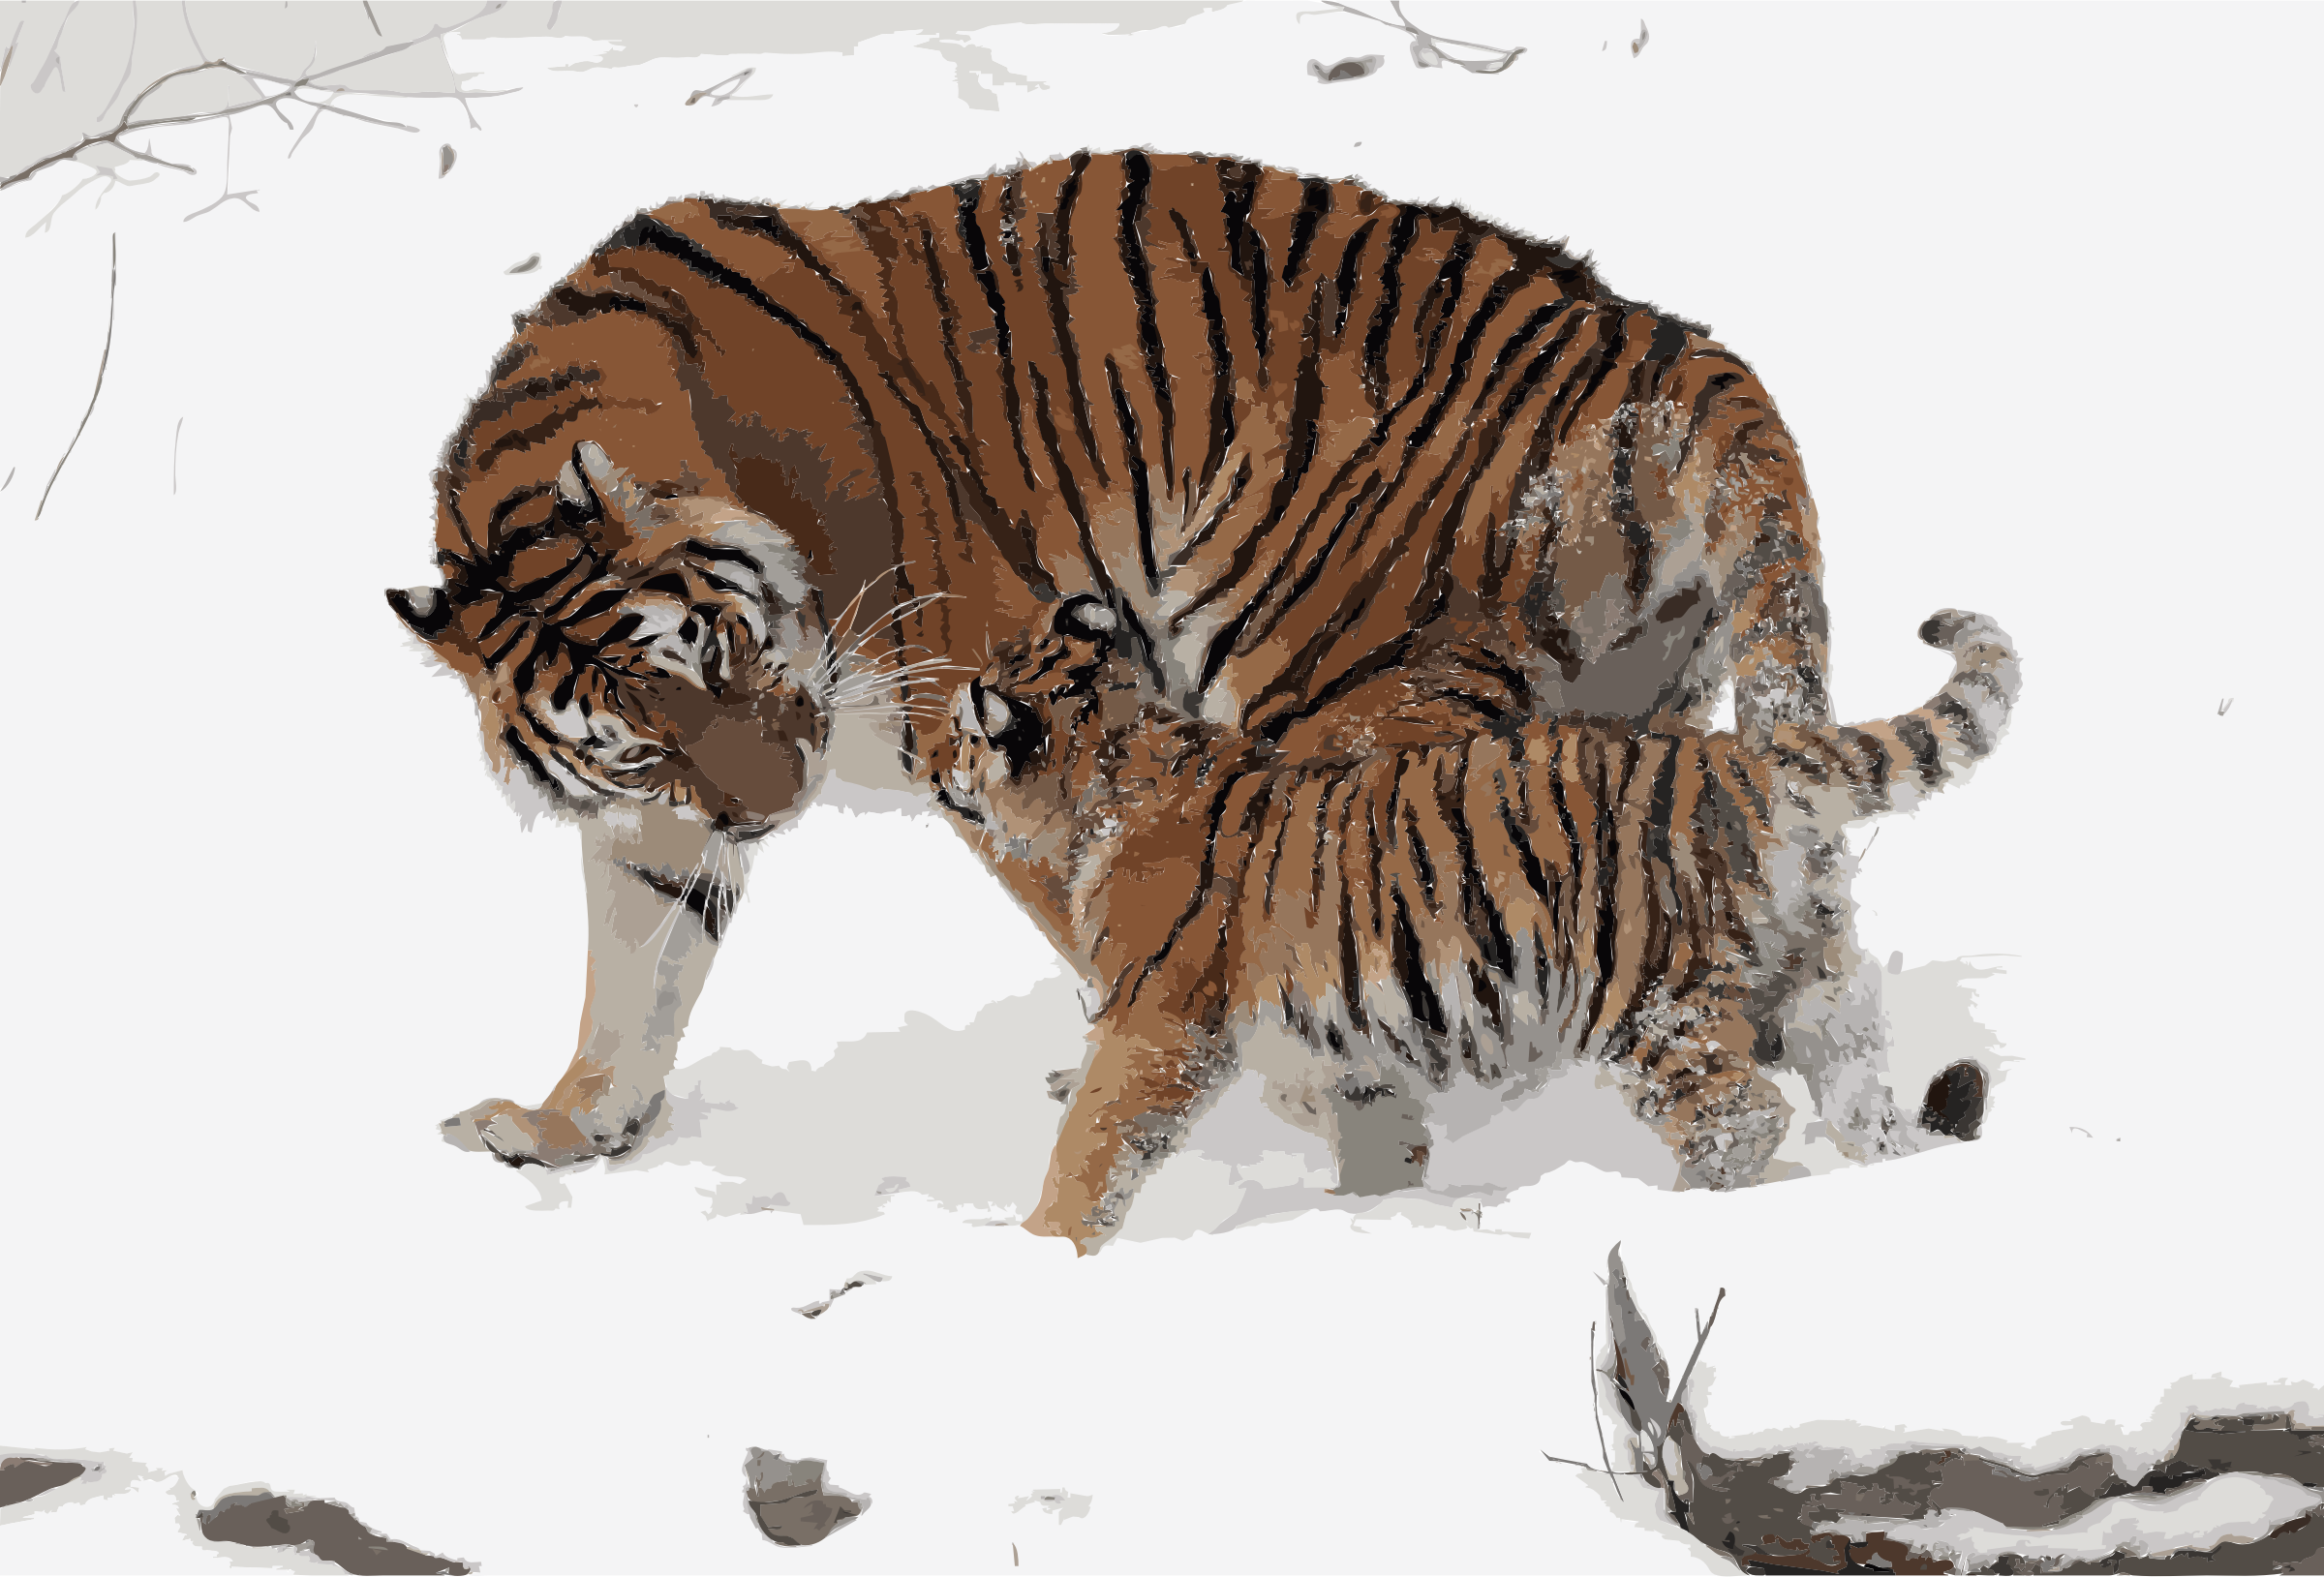 Panthera tigris altaica 13 - Buffalo Zoo by 5mdg5m+6nb2zzxa6i3qs